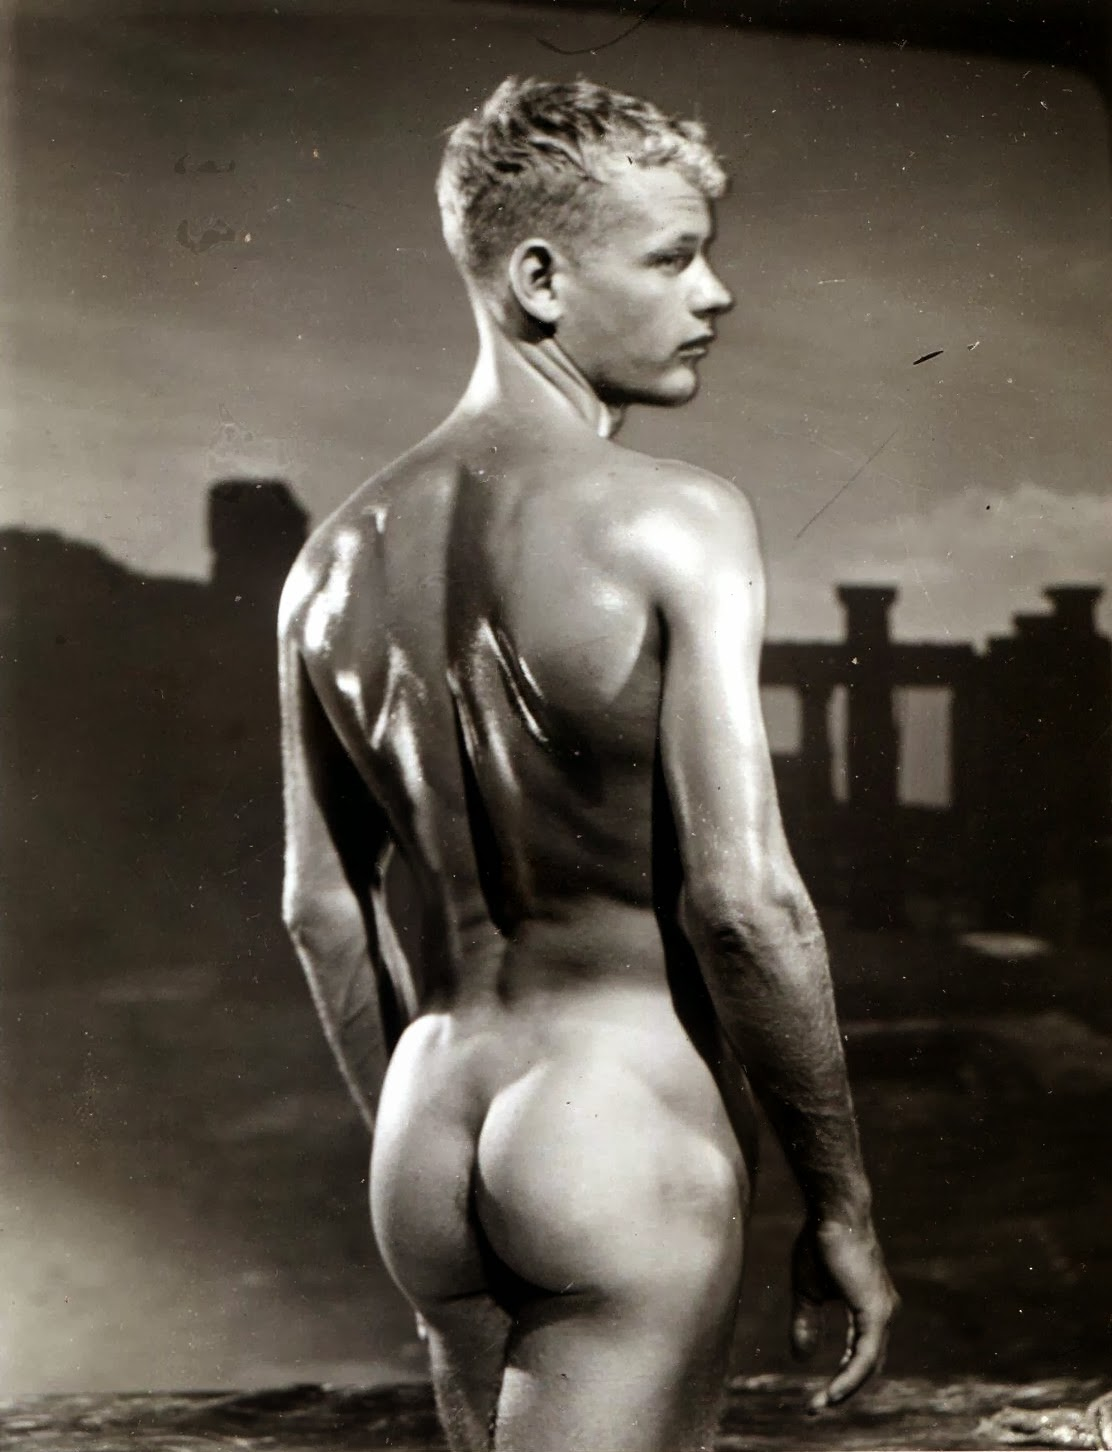 from Ignacio vintage gay beefcake pics